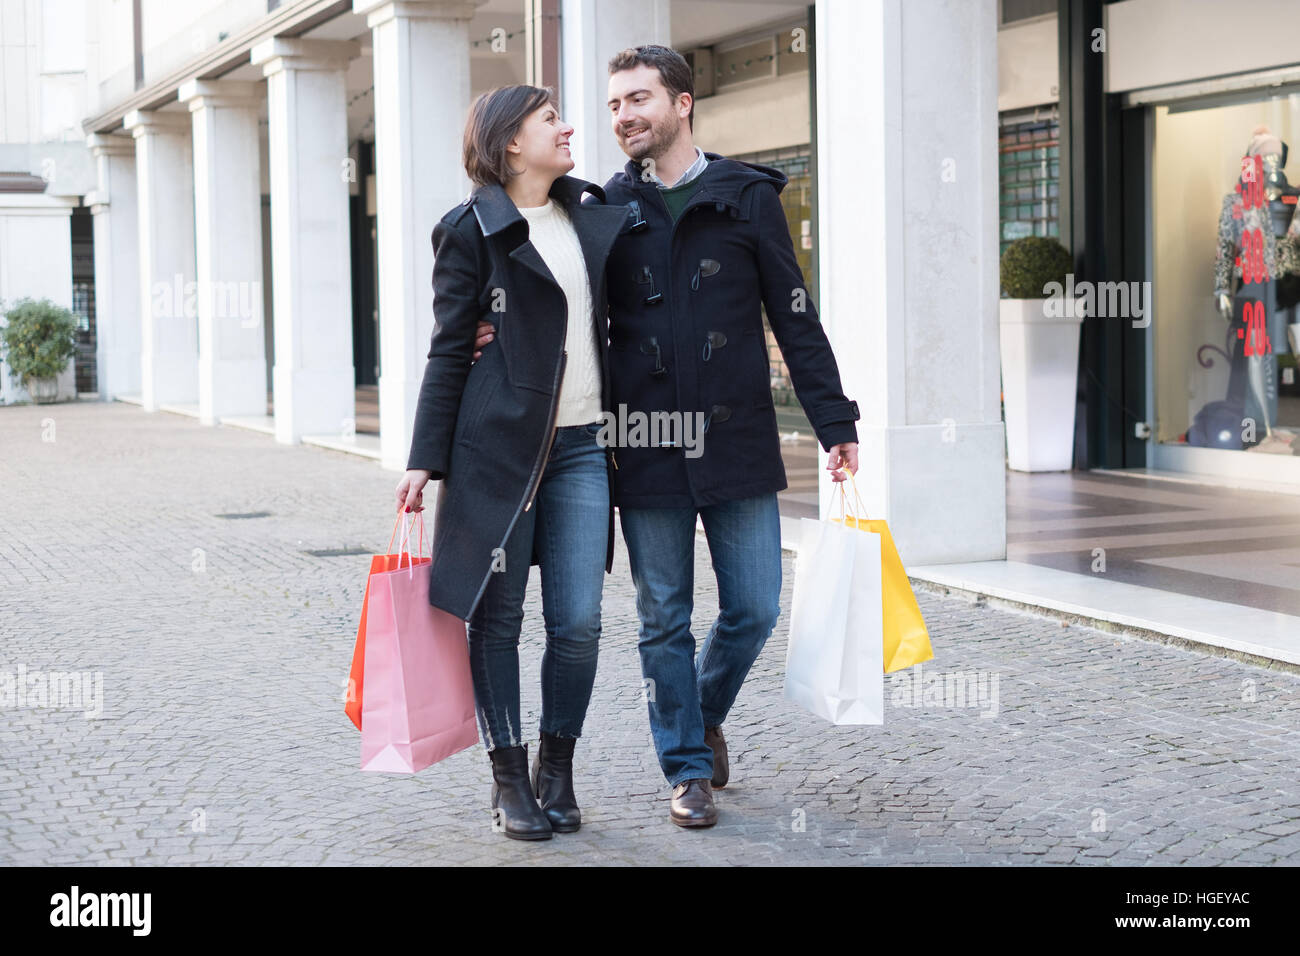 Couple in shopping time walking in the city street - Stock Image